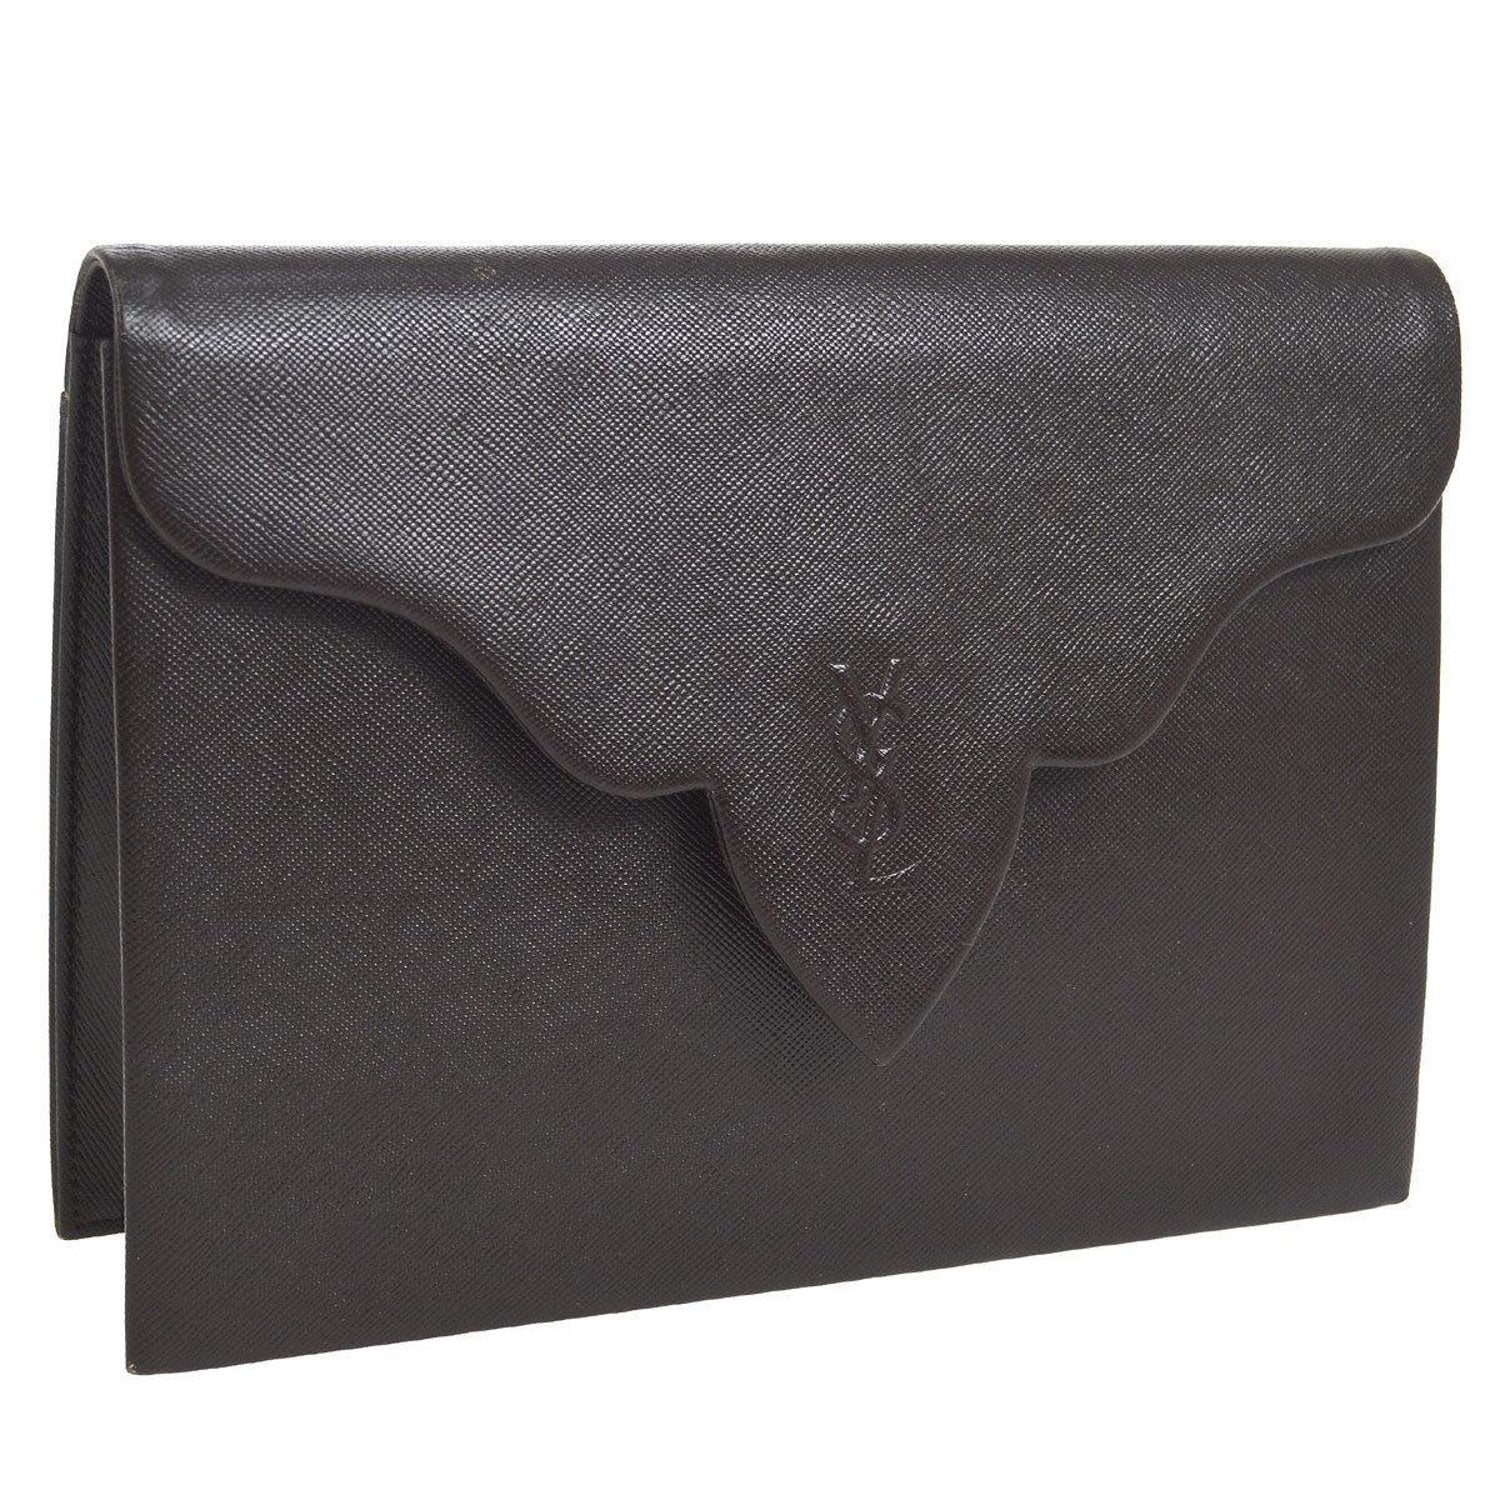 a4da7e7fb017 Yves Saint Laurent YSL Chocolate Brown Leather Envelope Evening Flap Clutch  Bag For Sale at 1stdibs